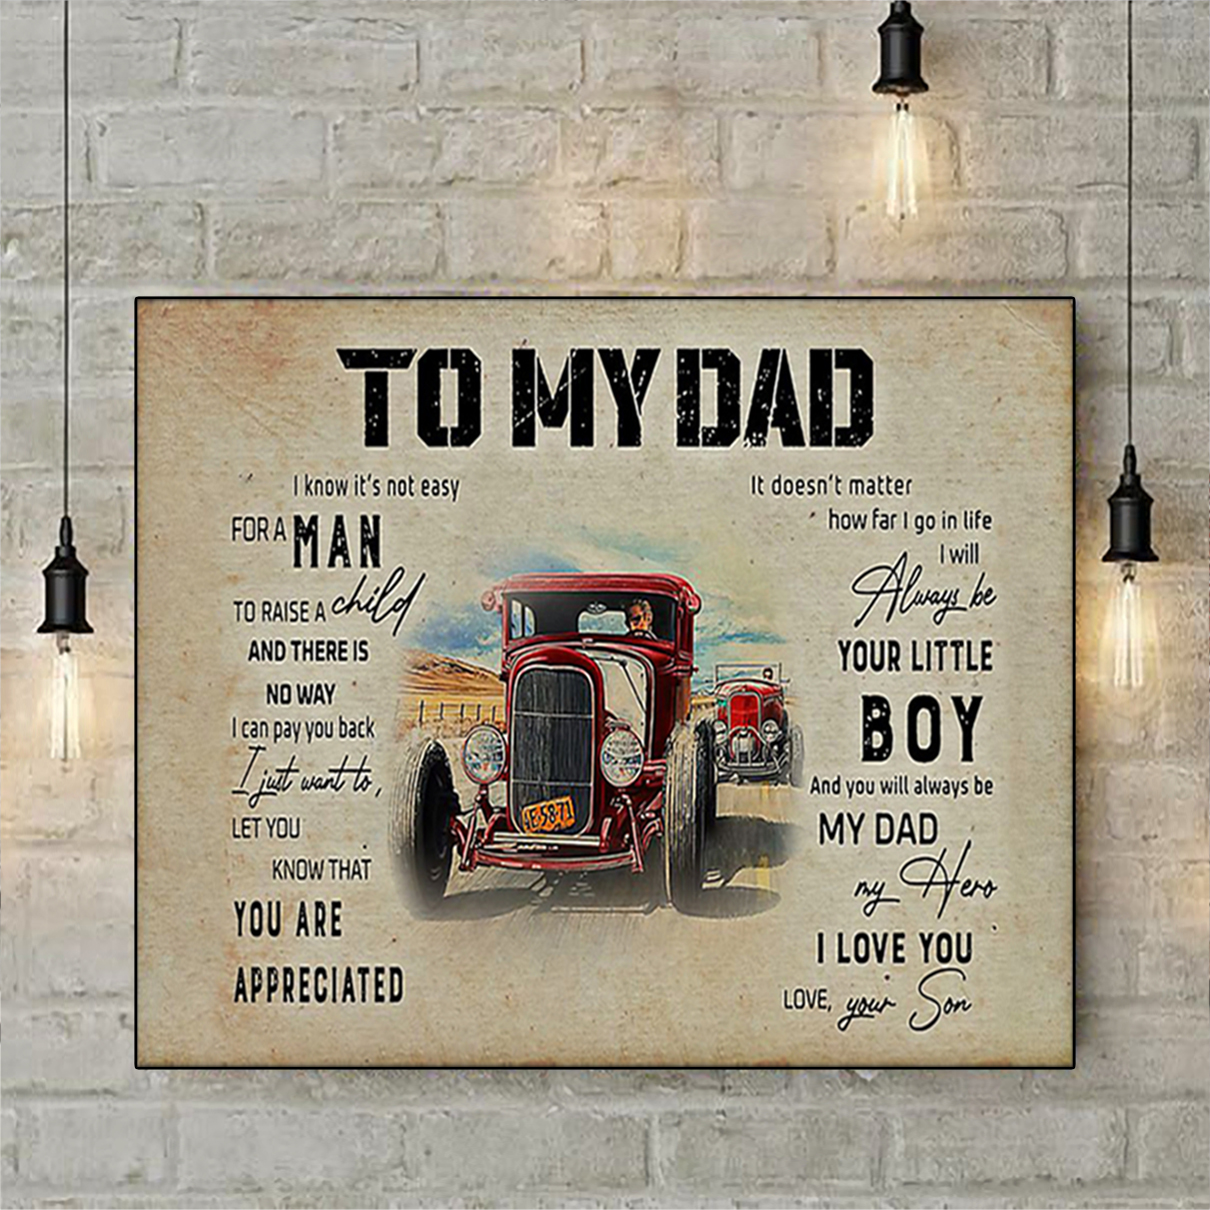 Hod rod to my dad your son poster A1